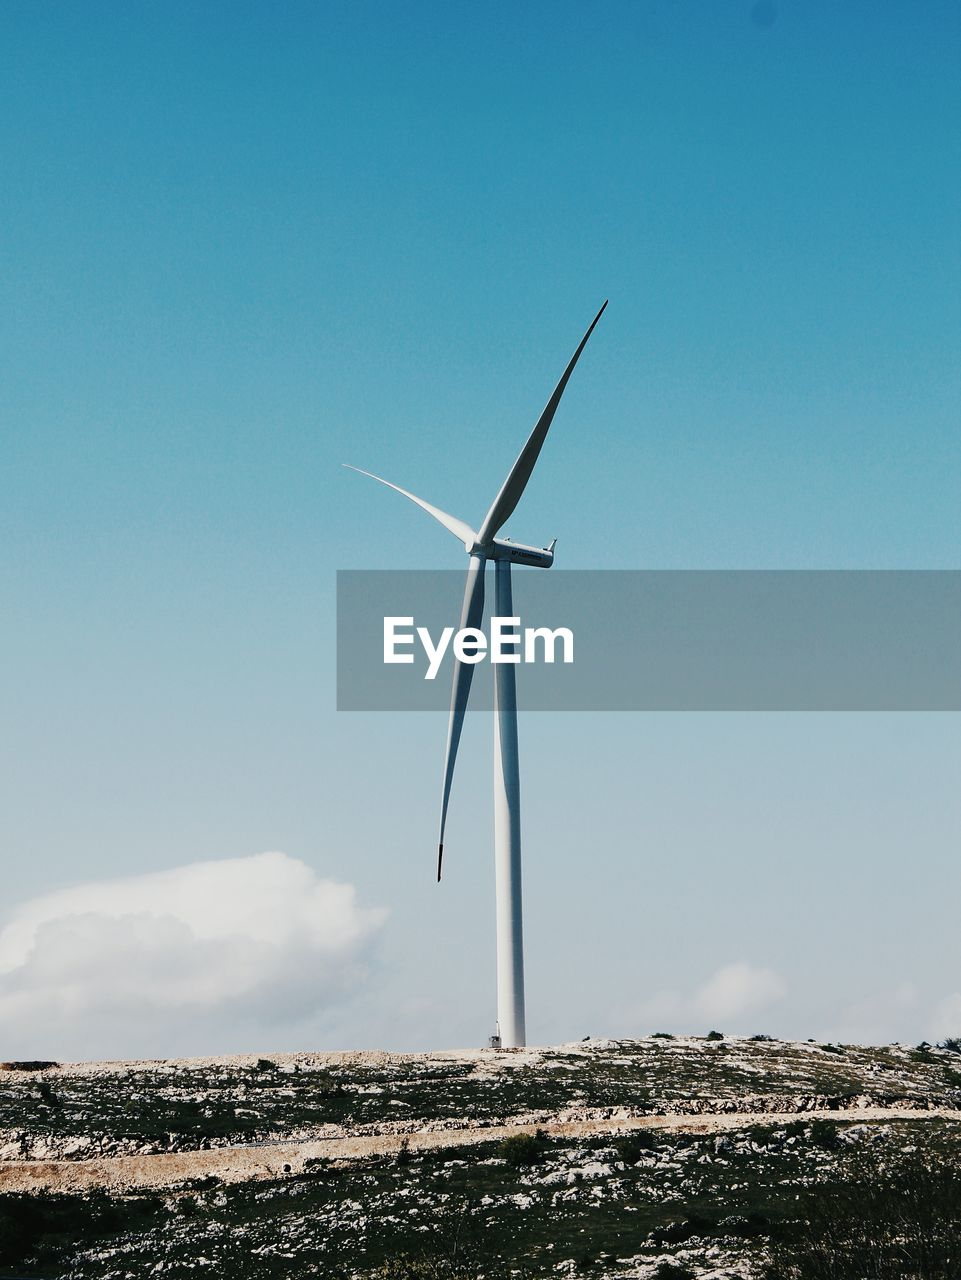 sky, wind turbine, environmental conservation, renewable energy, fuel and power generation, alternative energy, turbine, wind power, environment, blue, nature, day, low angle view, no people, landscape, outdoors, copy space, technology, cloud - sky, beauty in nature, sustainable resources